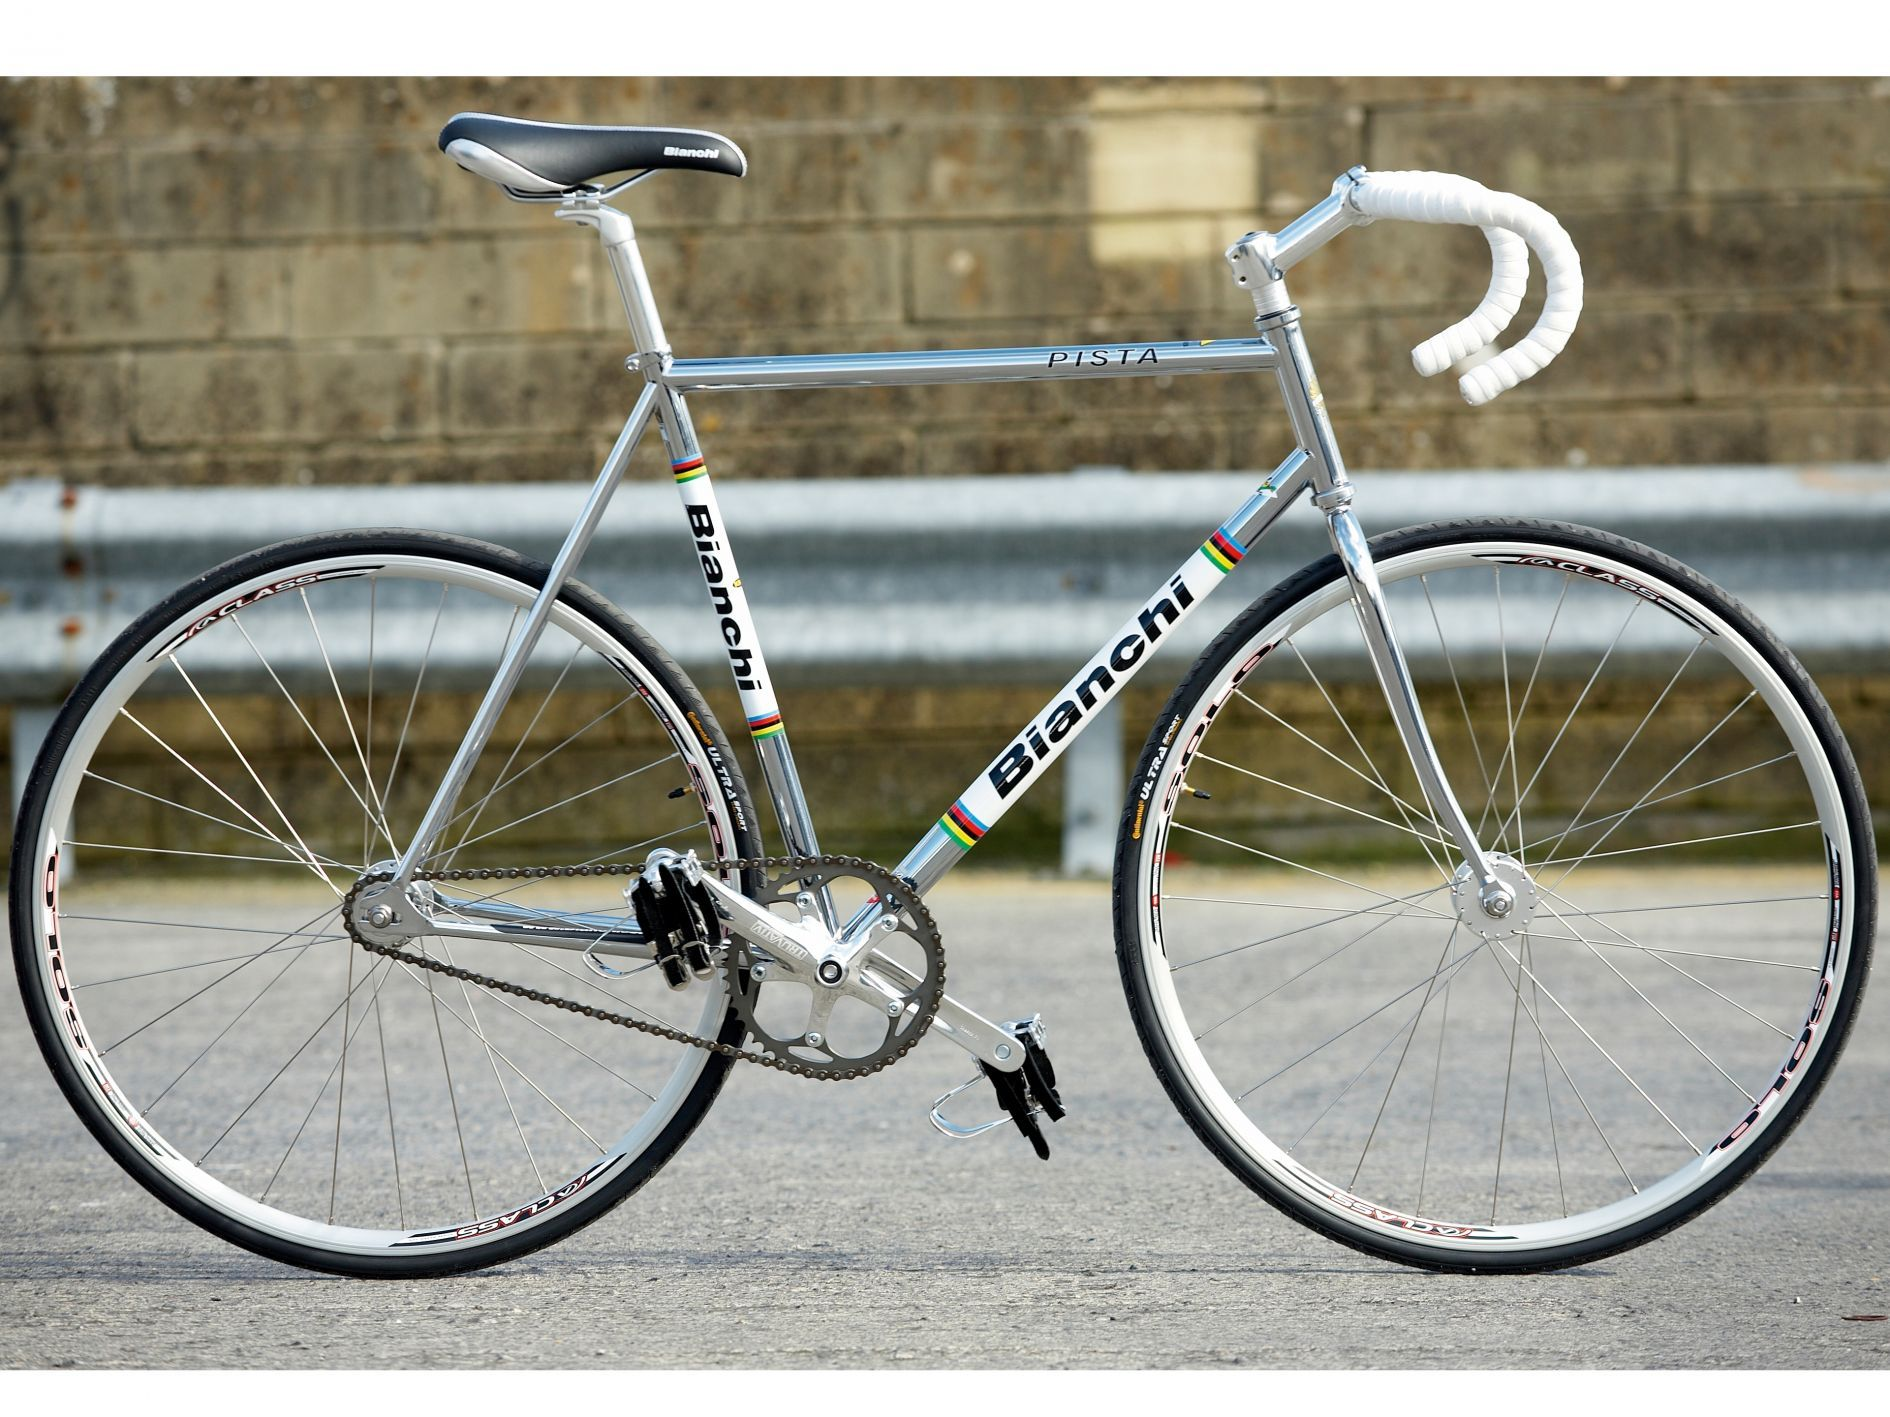 Bianchi Pista review | Single speed road bike, Bicycle